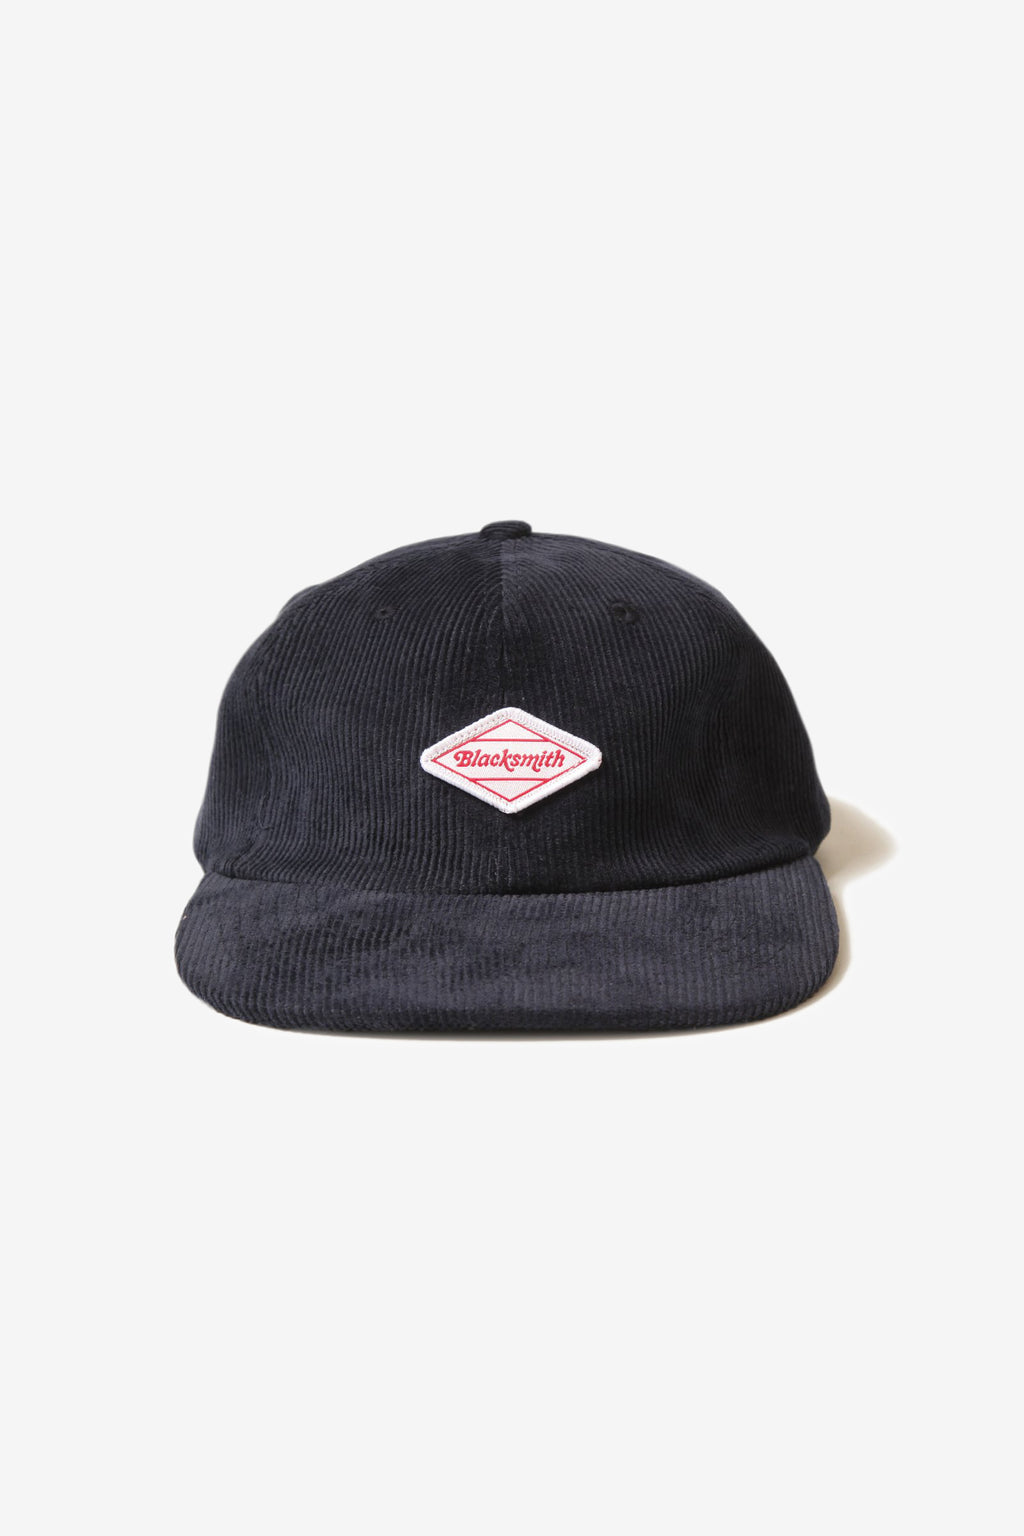 Blacksmith - Corduroy Everyday Cap - Navy